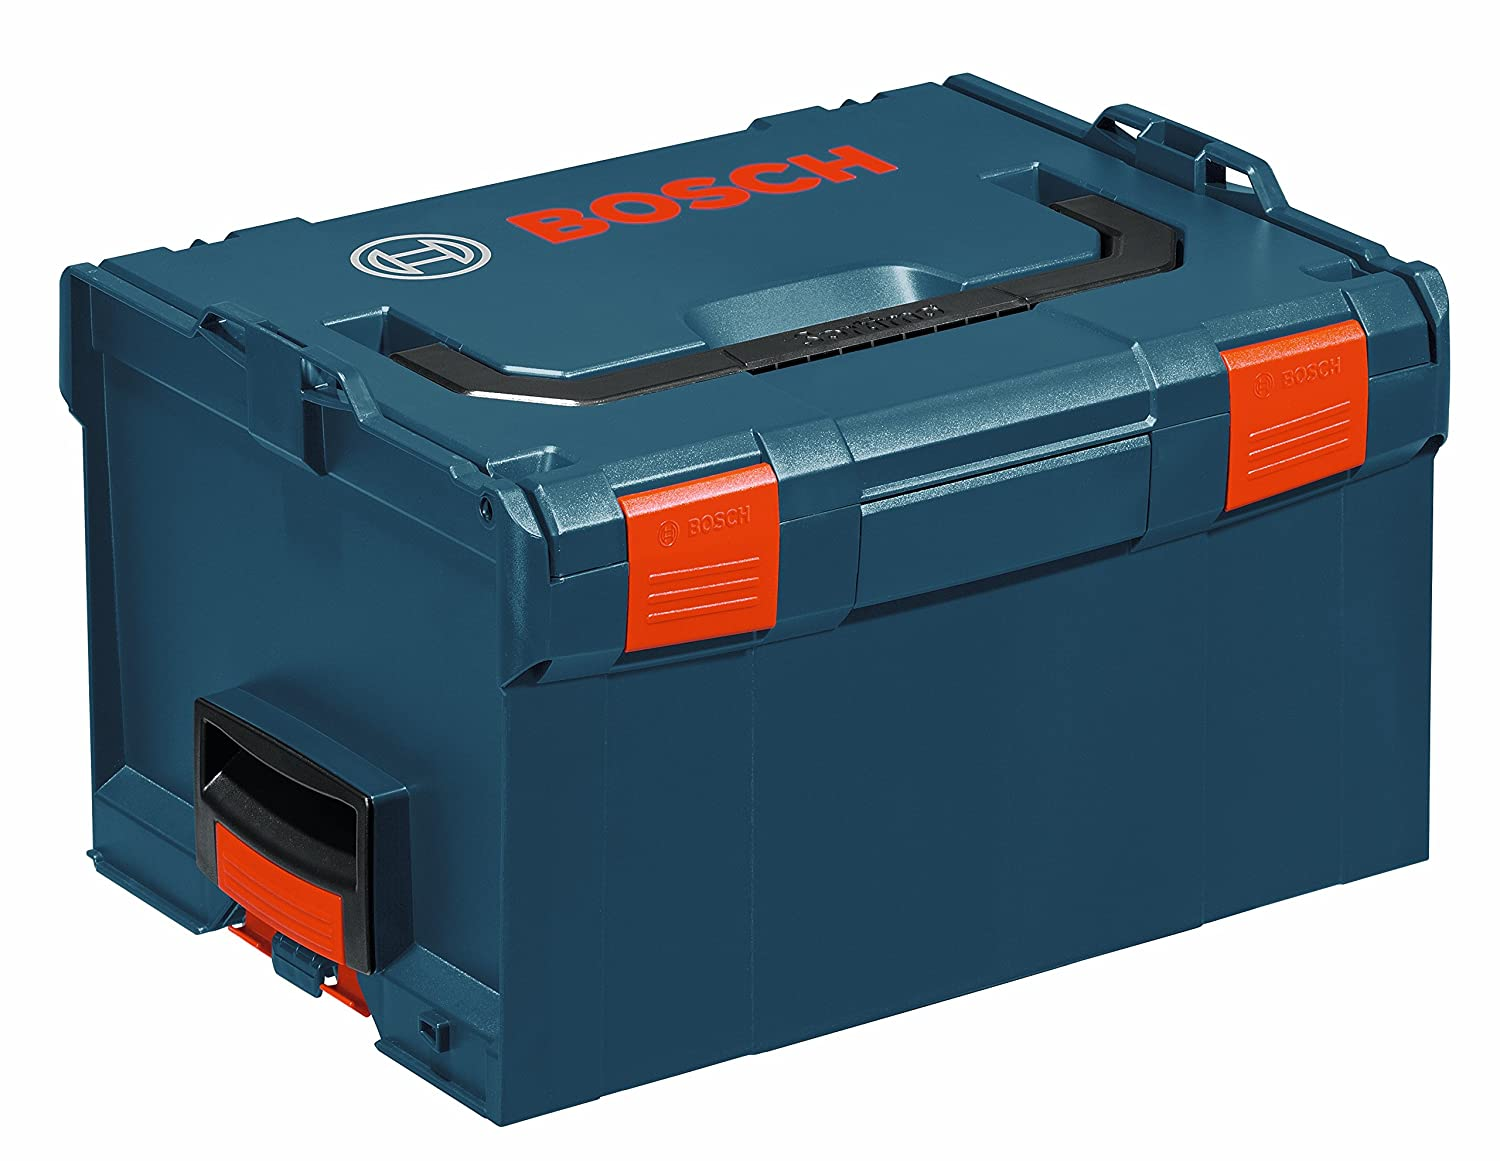 Bosch L-BOXX-3 10 In x 17.5 In x 14 In Stackable Tool Storage Case